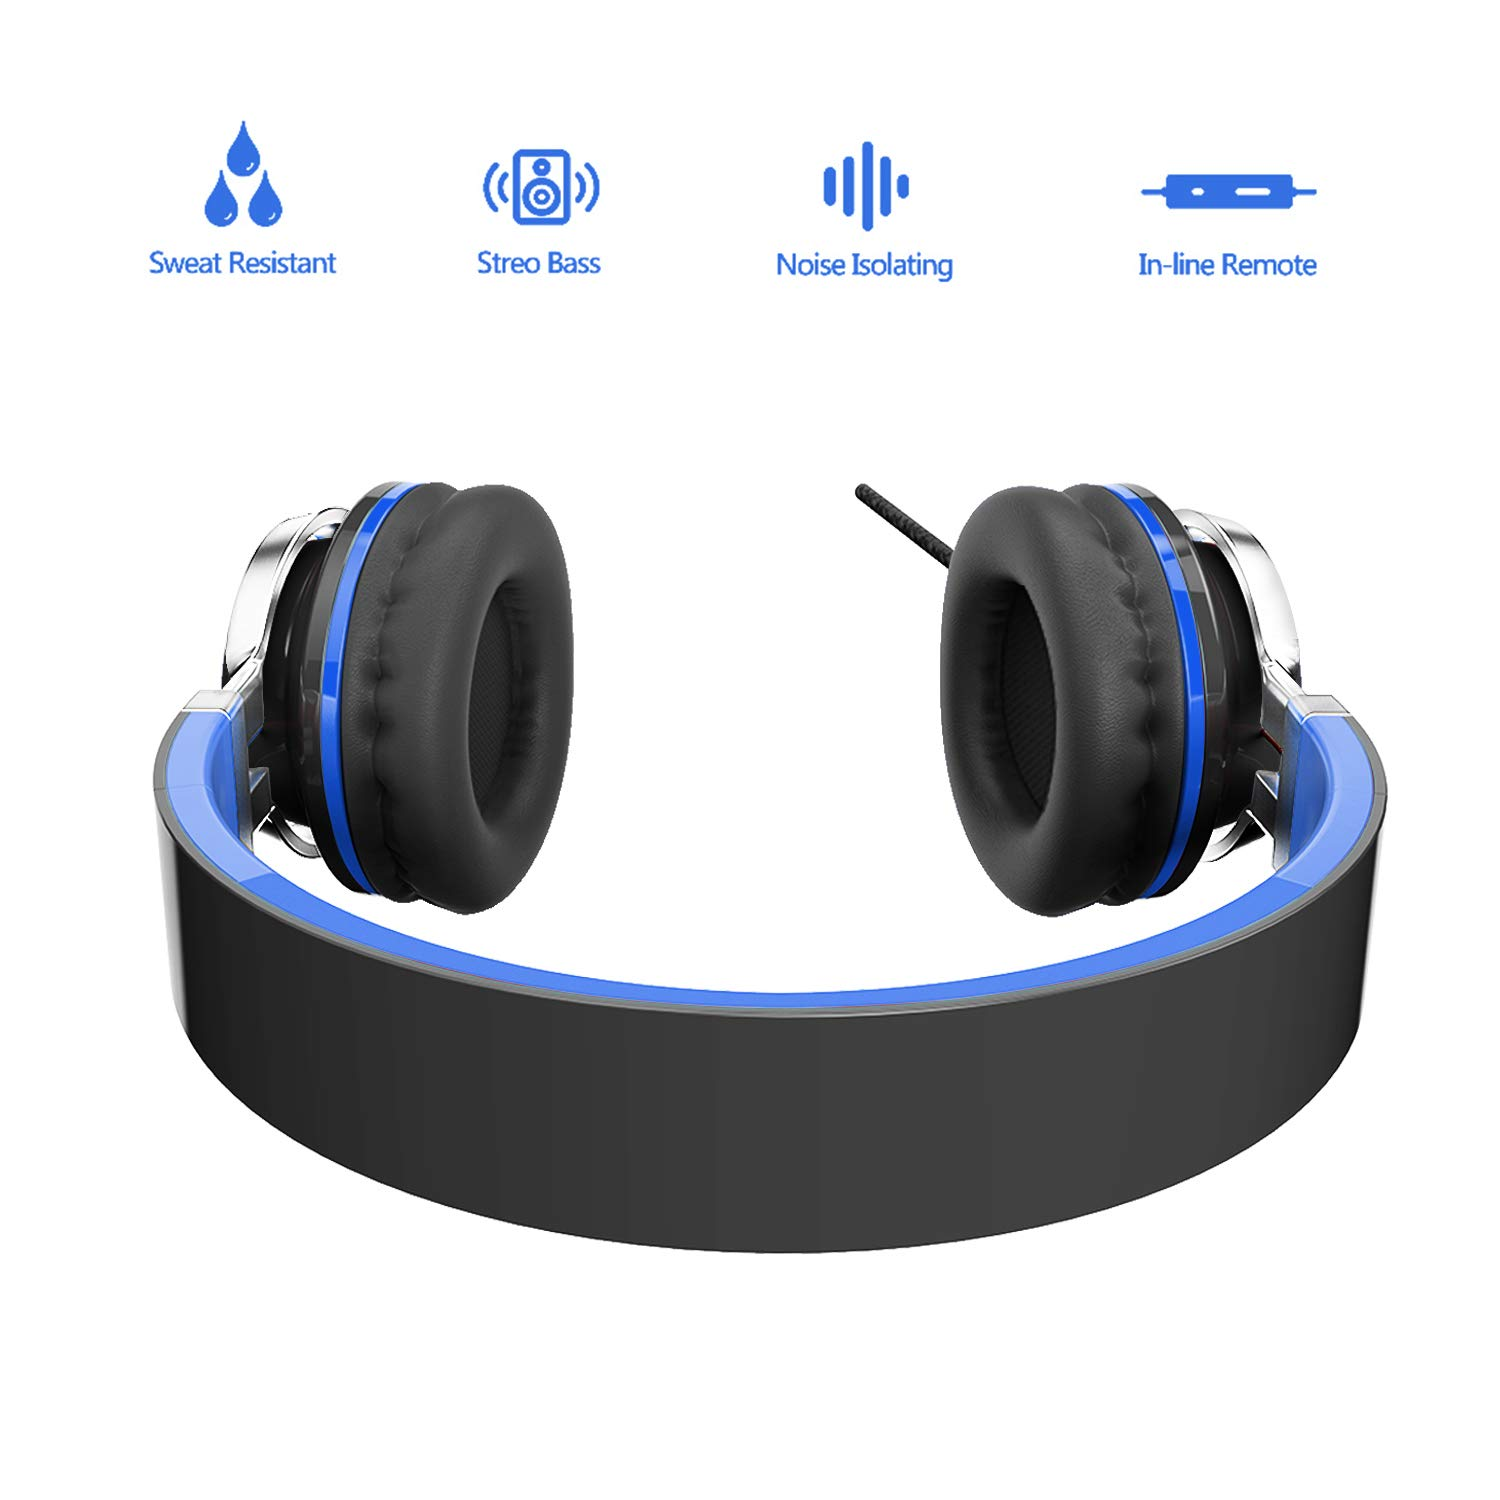 Elecder i39 Headphones with Microphone Kids Children Girls Boys Teens Foldable Adjustable Wired On Ear Headsets Compatible iPad Cellphones Computer MP3/4 Blue/Black by ELECDER (Image #3)